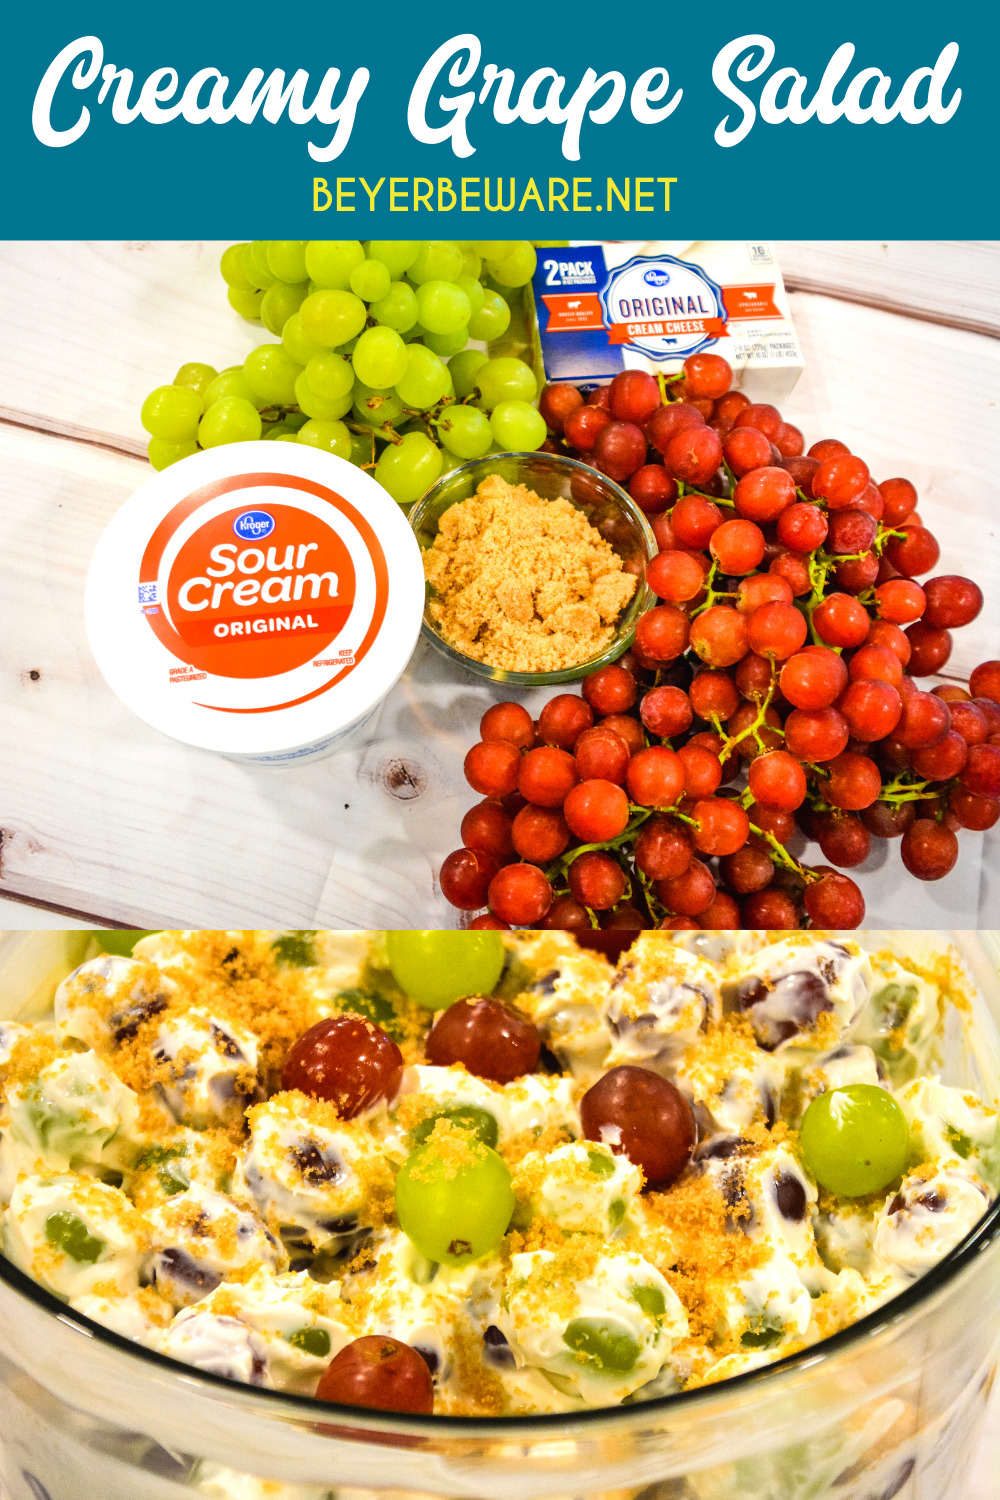 Cream cheese grape salad is an easy 5-ingredient fruit salad recipe made with red and green grapes, cream cheese, sour cream, and brown sugar.#EasyRecipe #GrapeSalad #EasyRecipe #FruitSalad #Fruit